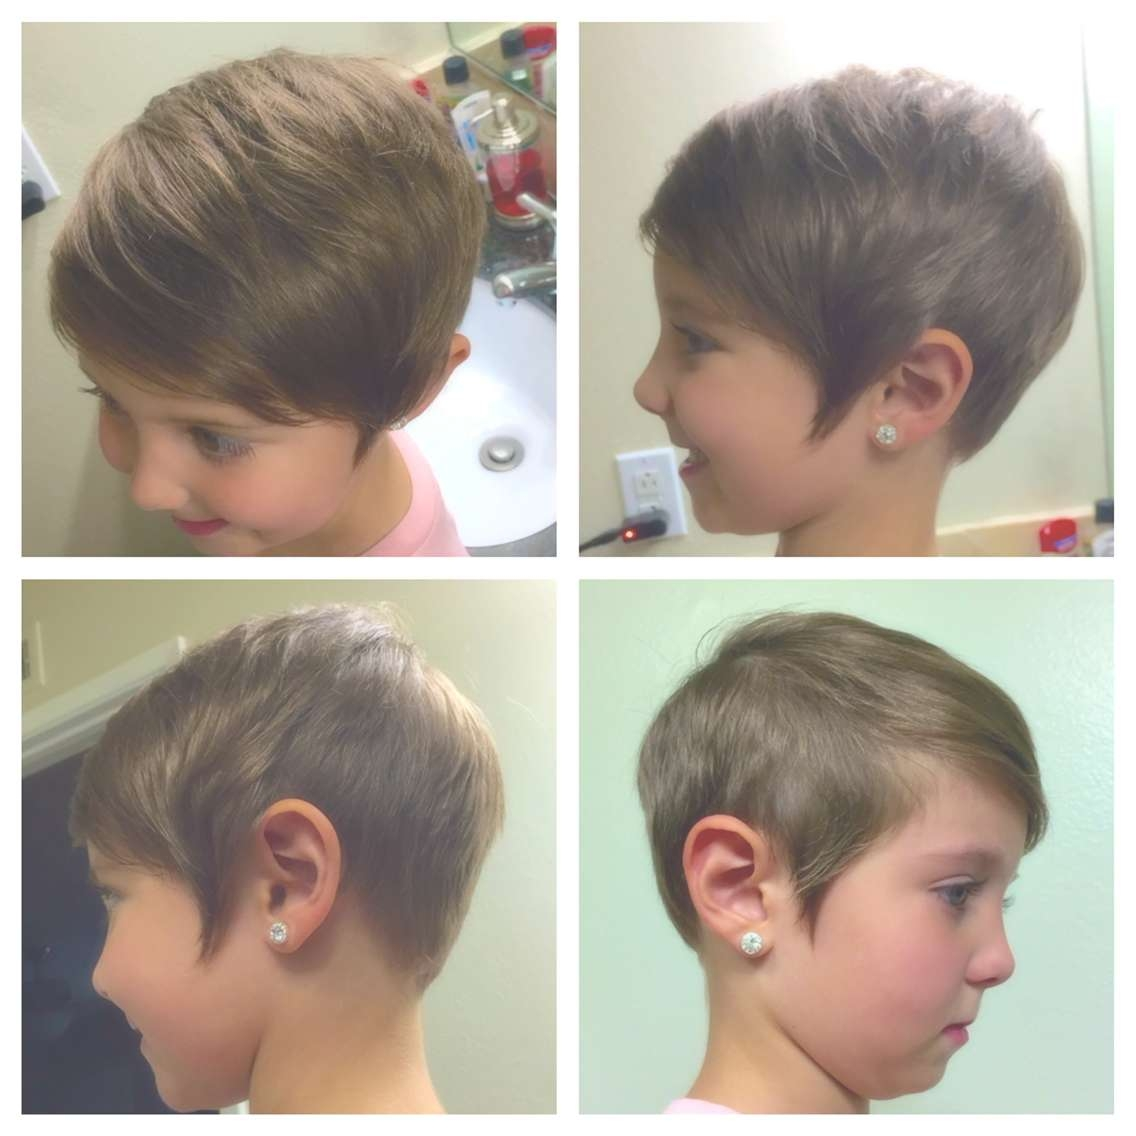 Kids Toddler Short Pixie Haircut (View 3 of 15)